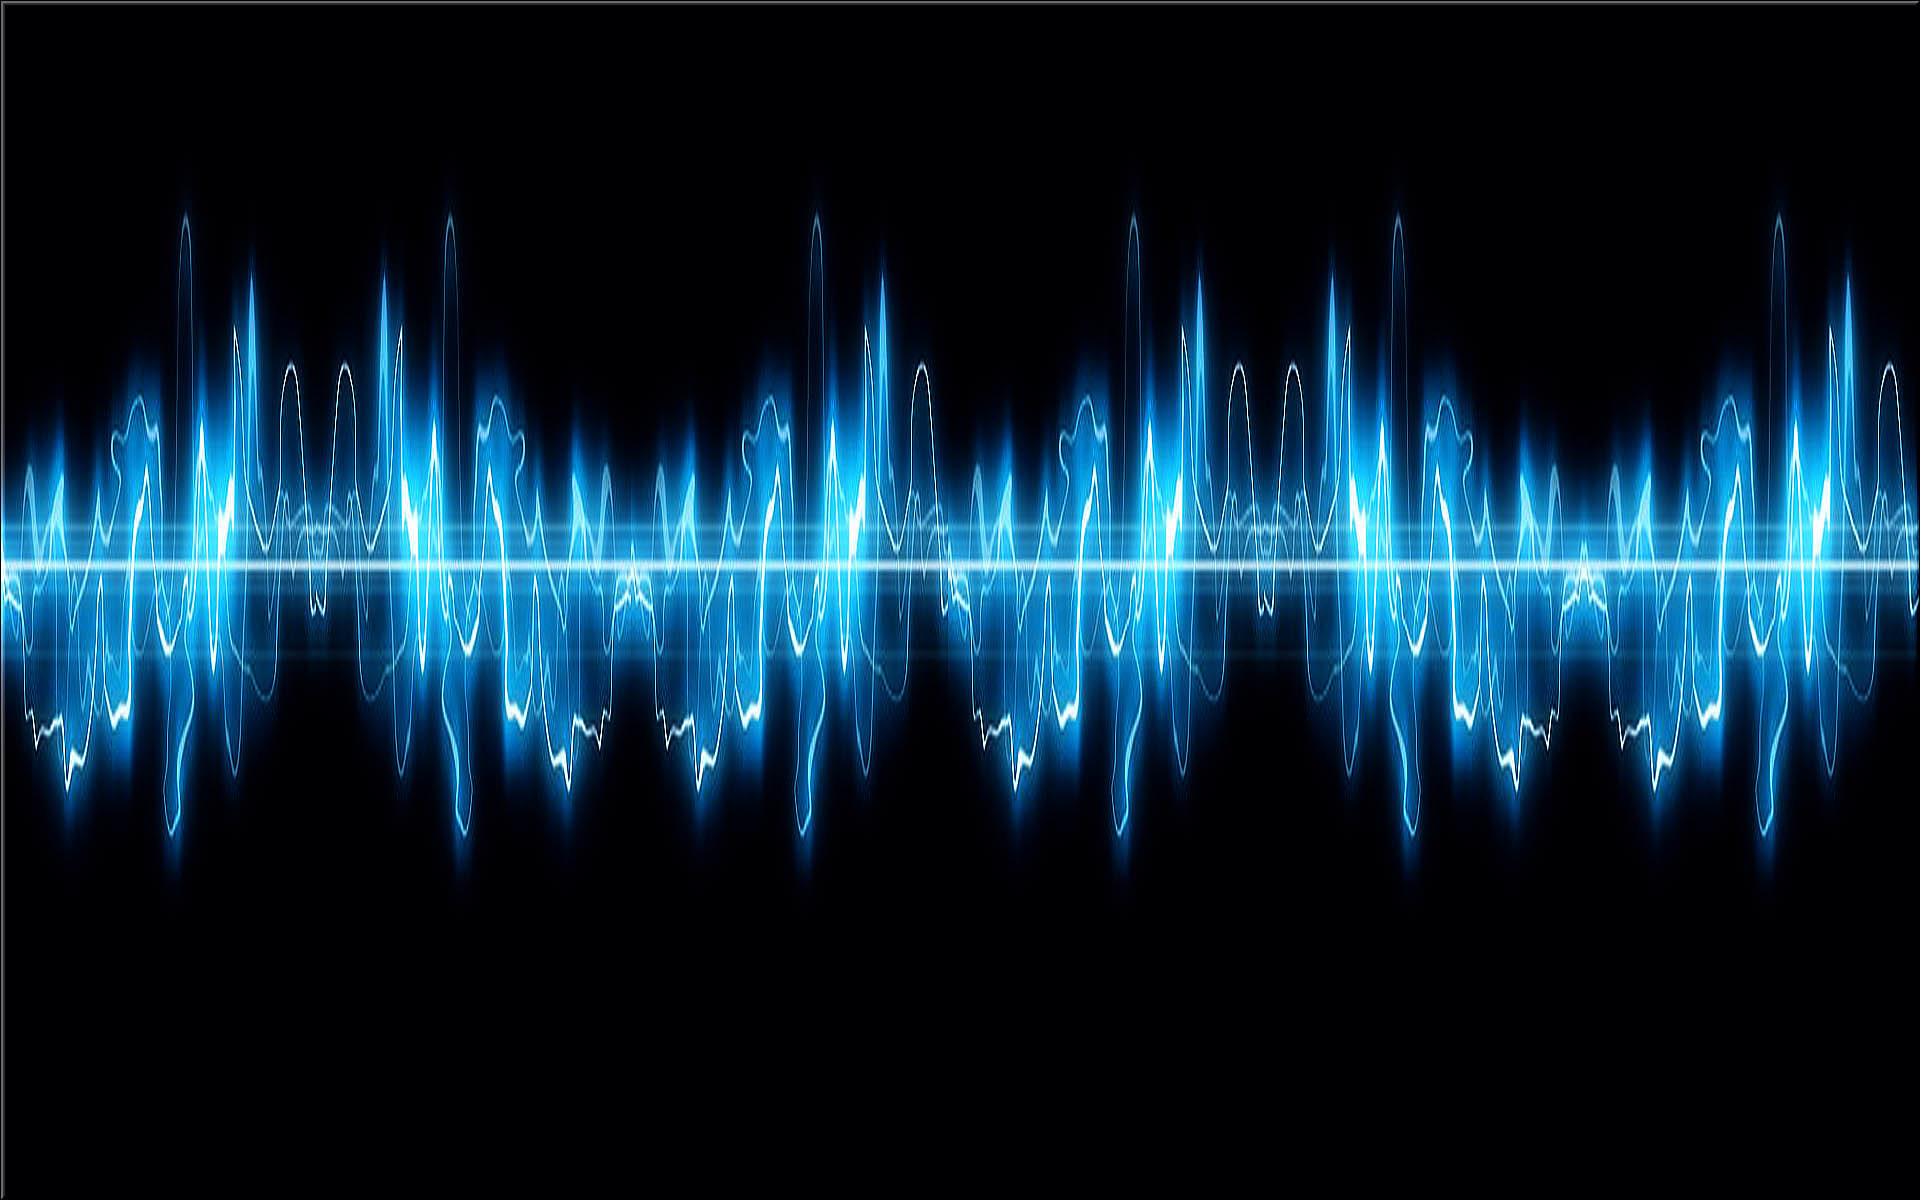 Music Sound Waves Live Wallpaper 74 images 1920x1200